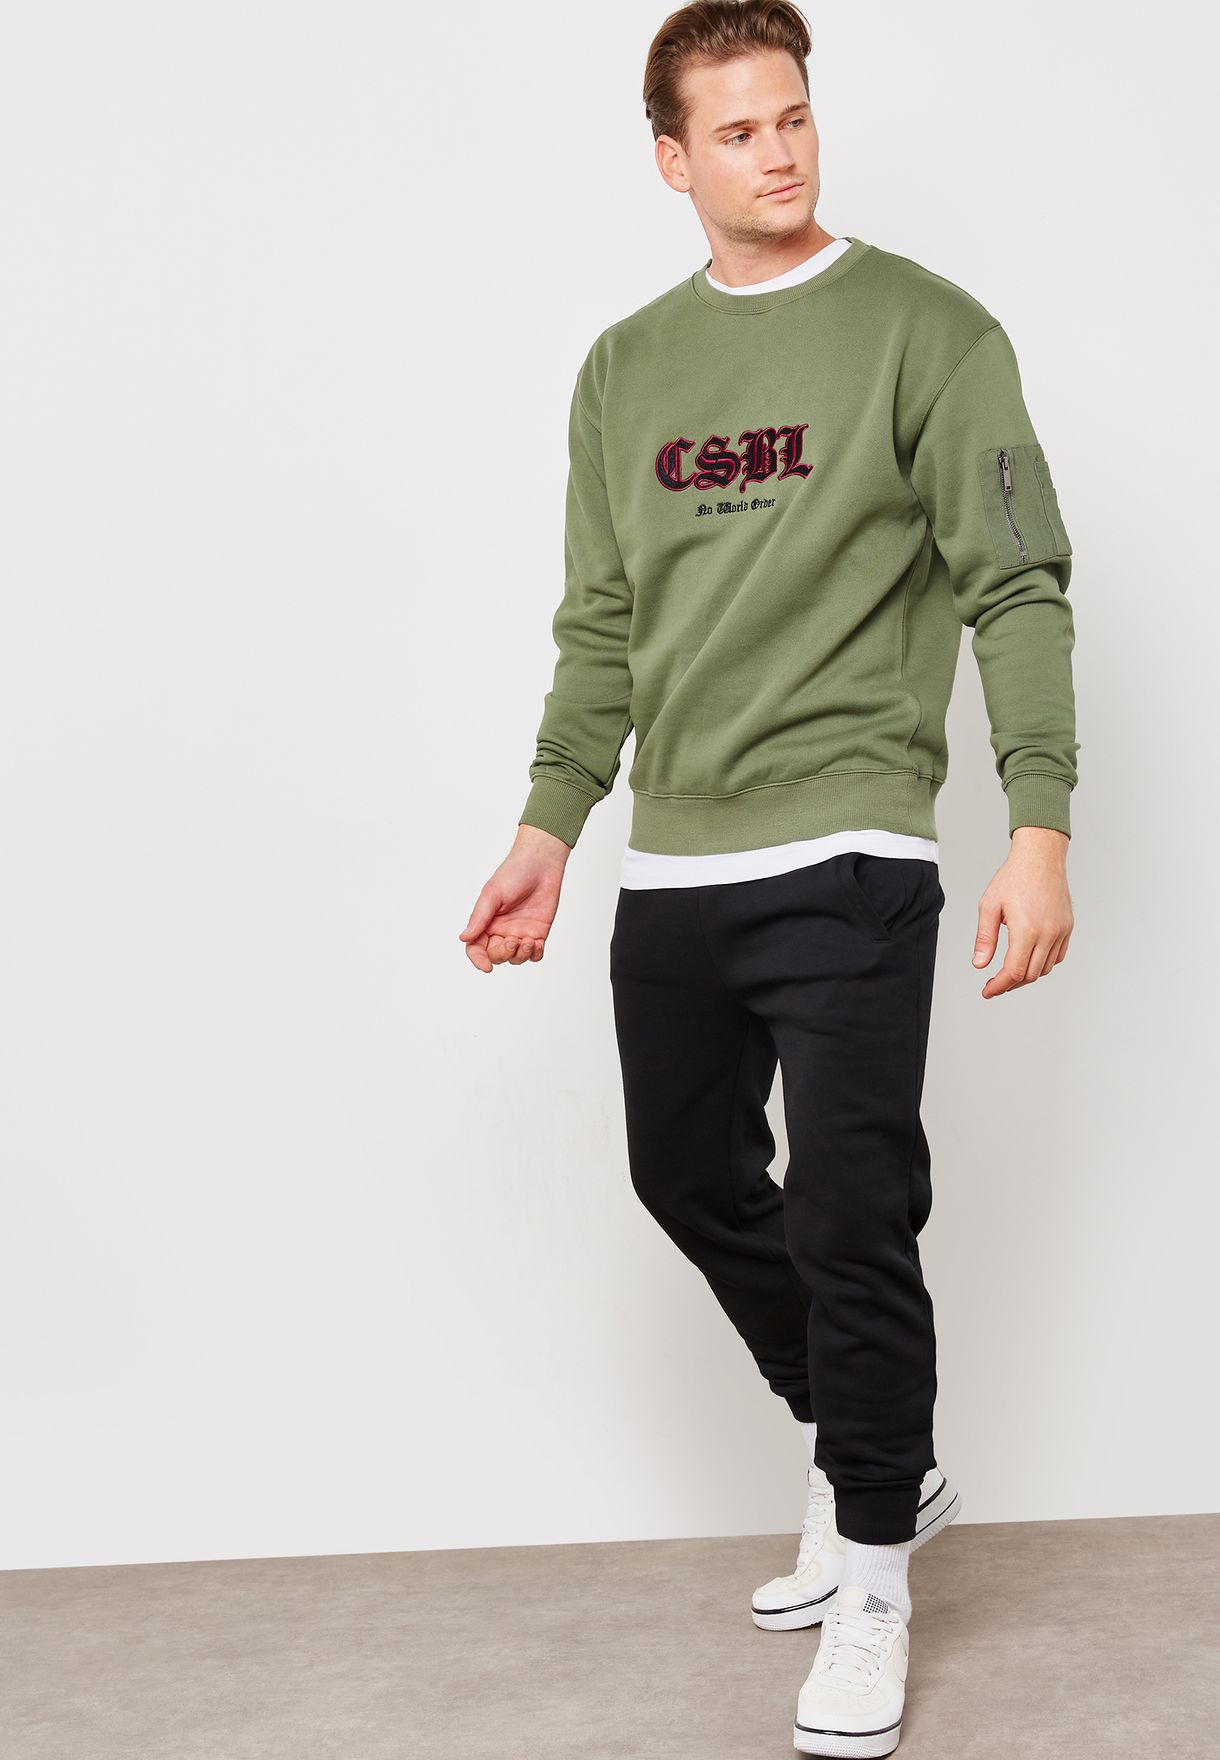 Arise Crew Neck Sweatshirt